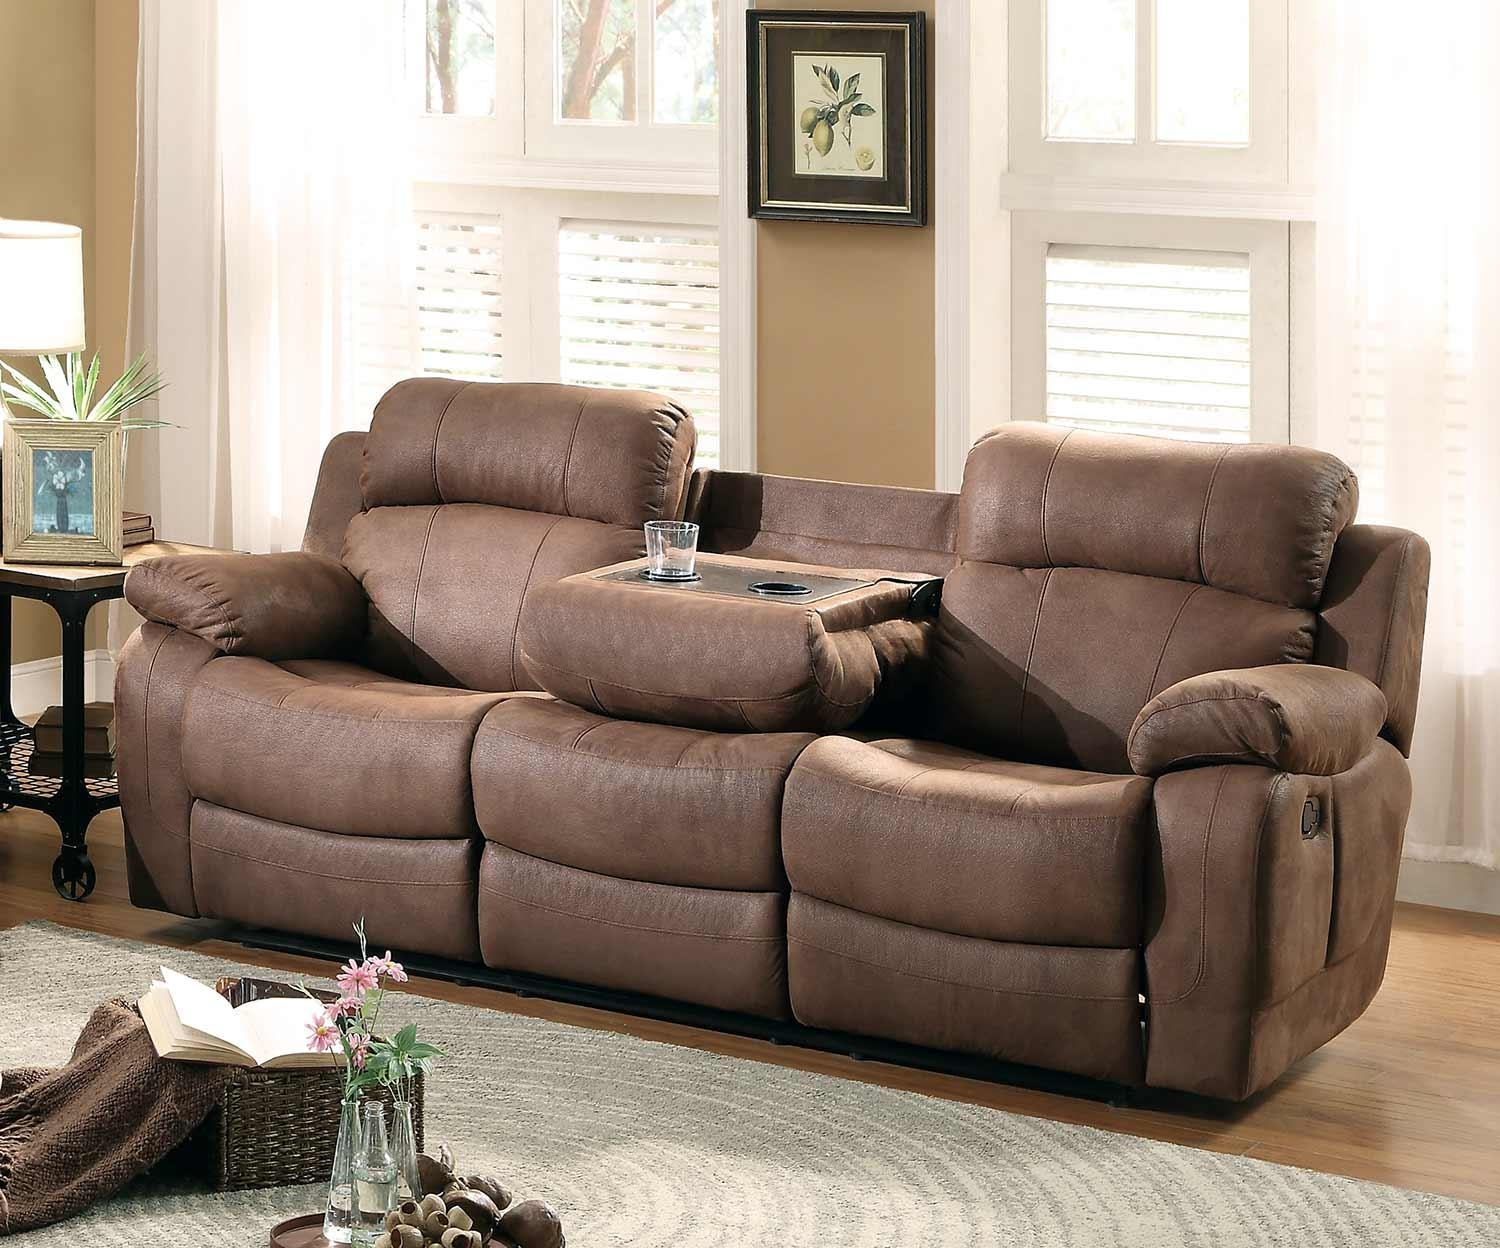 Sofas Center : Furniture Romantic Loveseat Recliner With Console Within Sofas With Console (View 8 of 20)